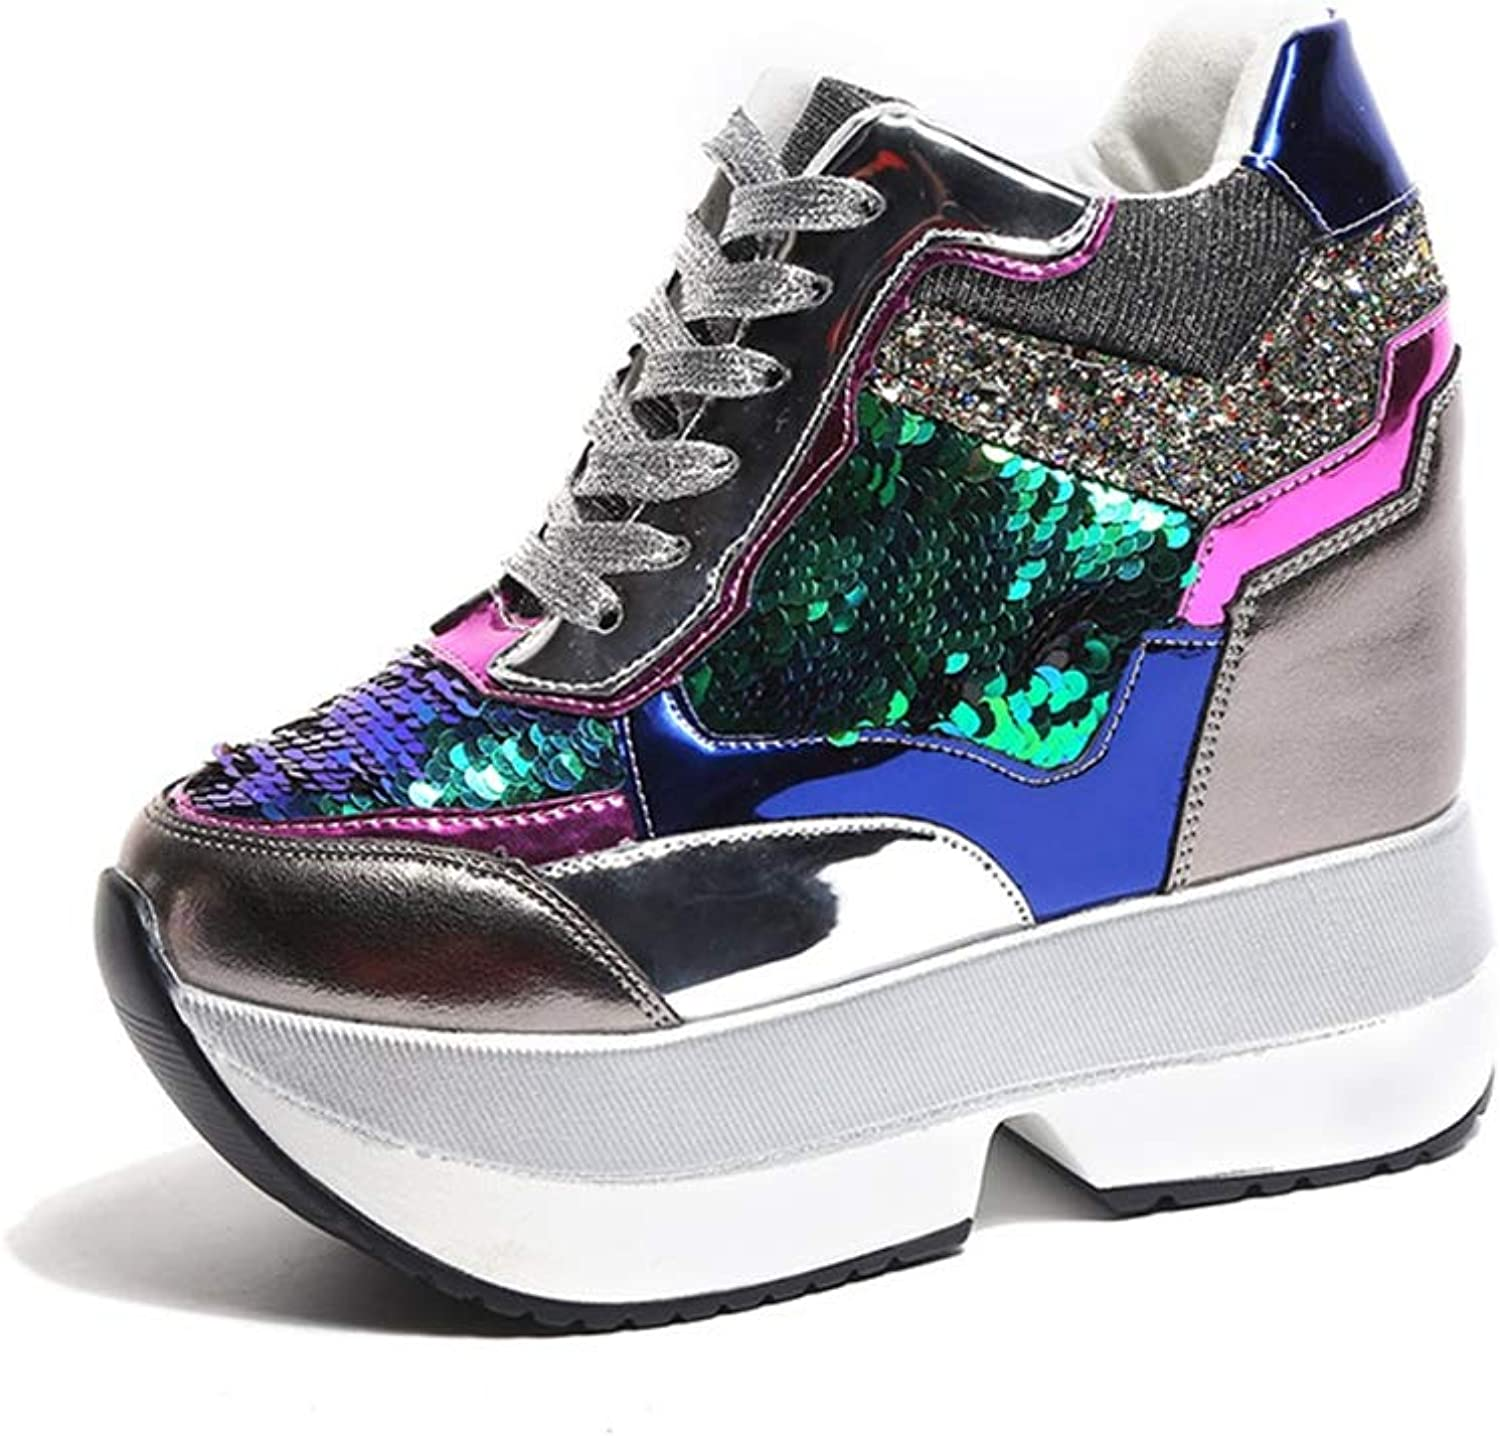 Hoxekle Women Luxury Platform Wedge shoes for Woman Height Increase shoes Woman Sneakers Casual shoes